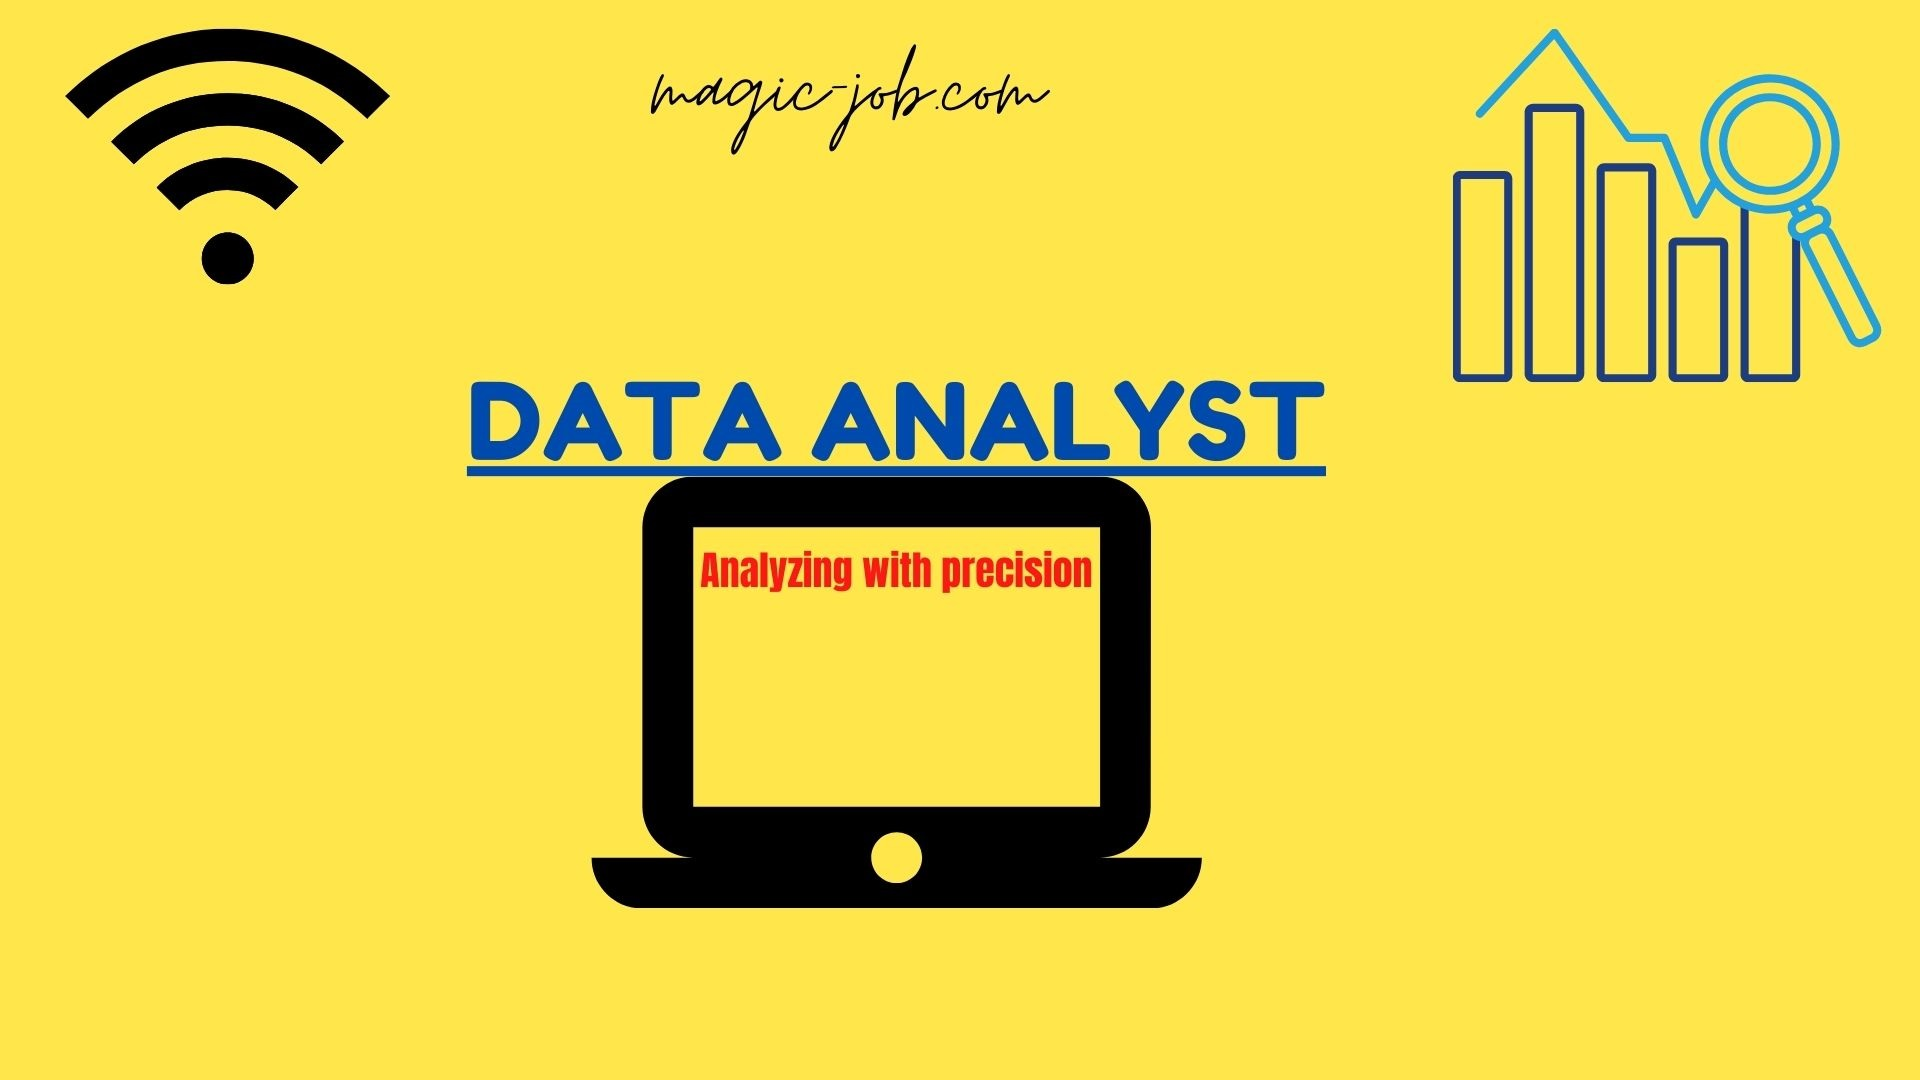 Data Analyst carrier a complete guide  for 2021 and beyond | Magic Job